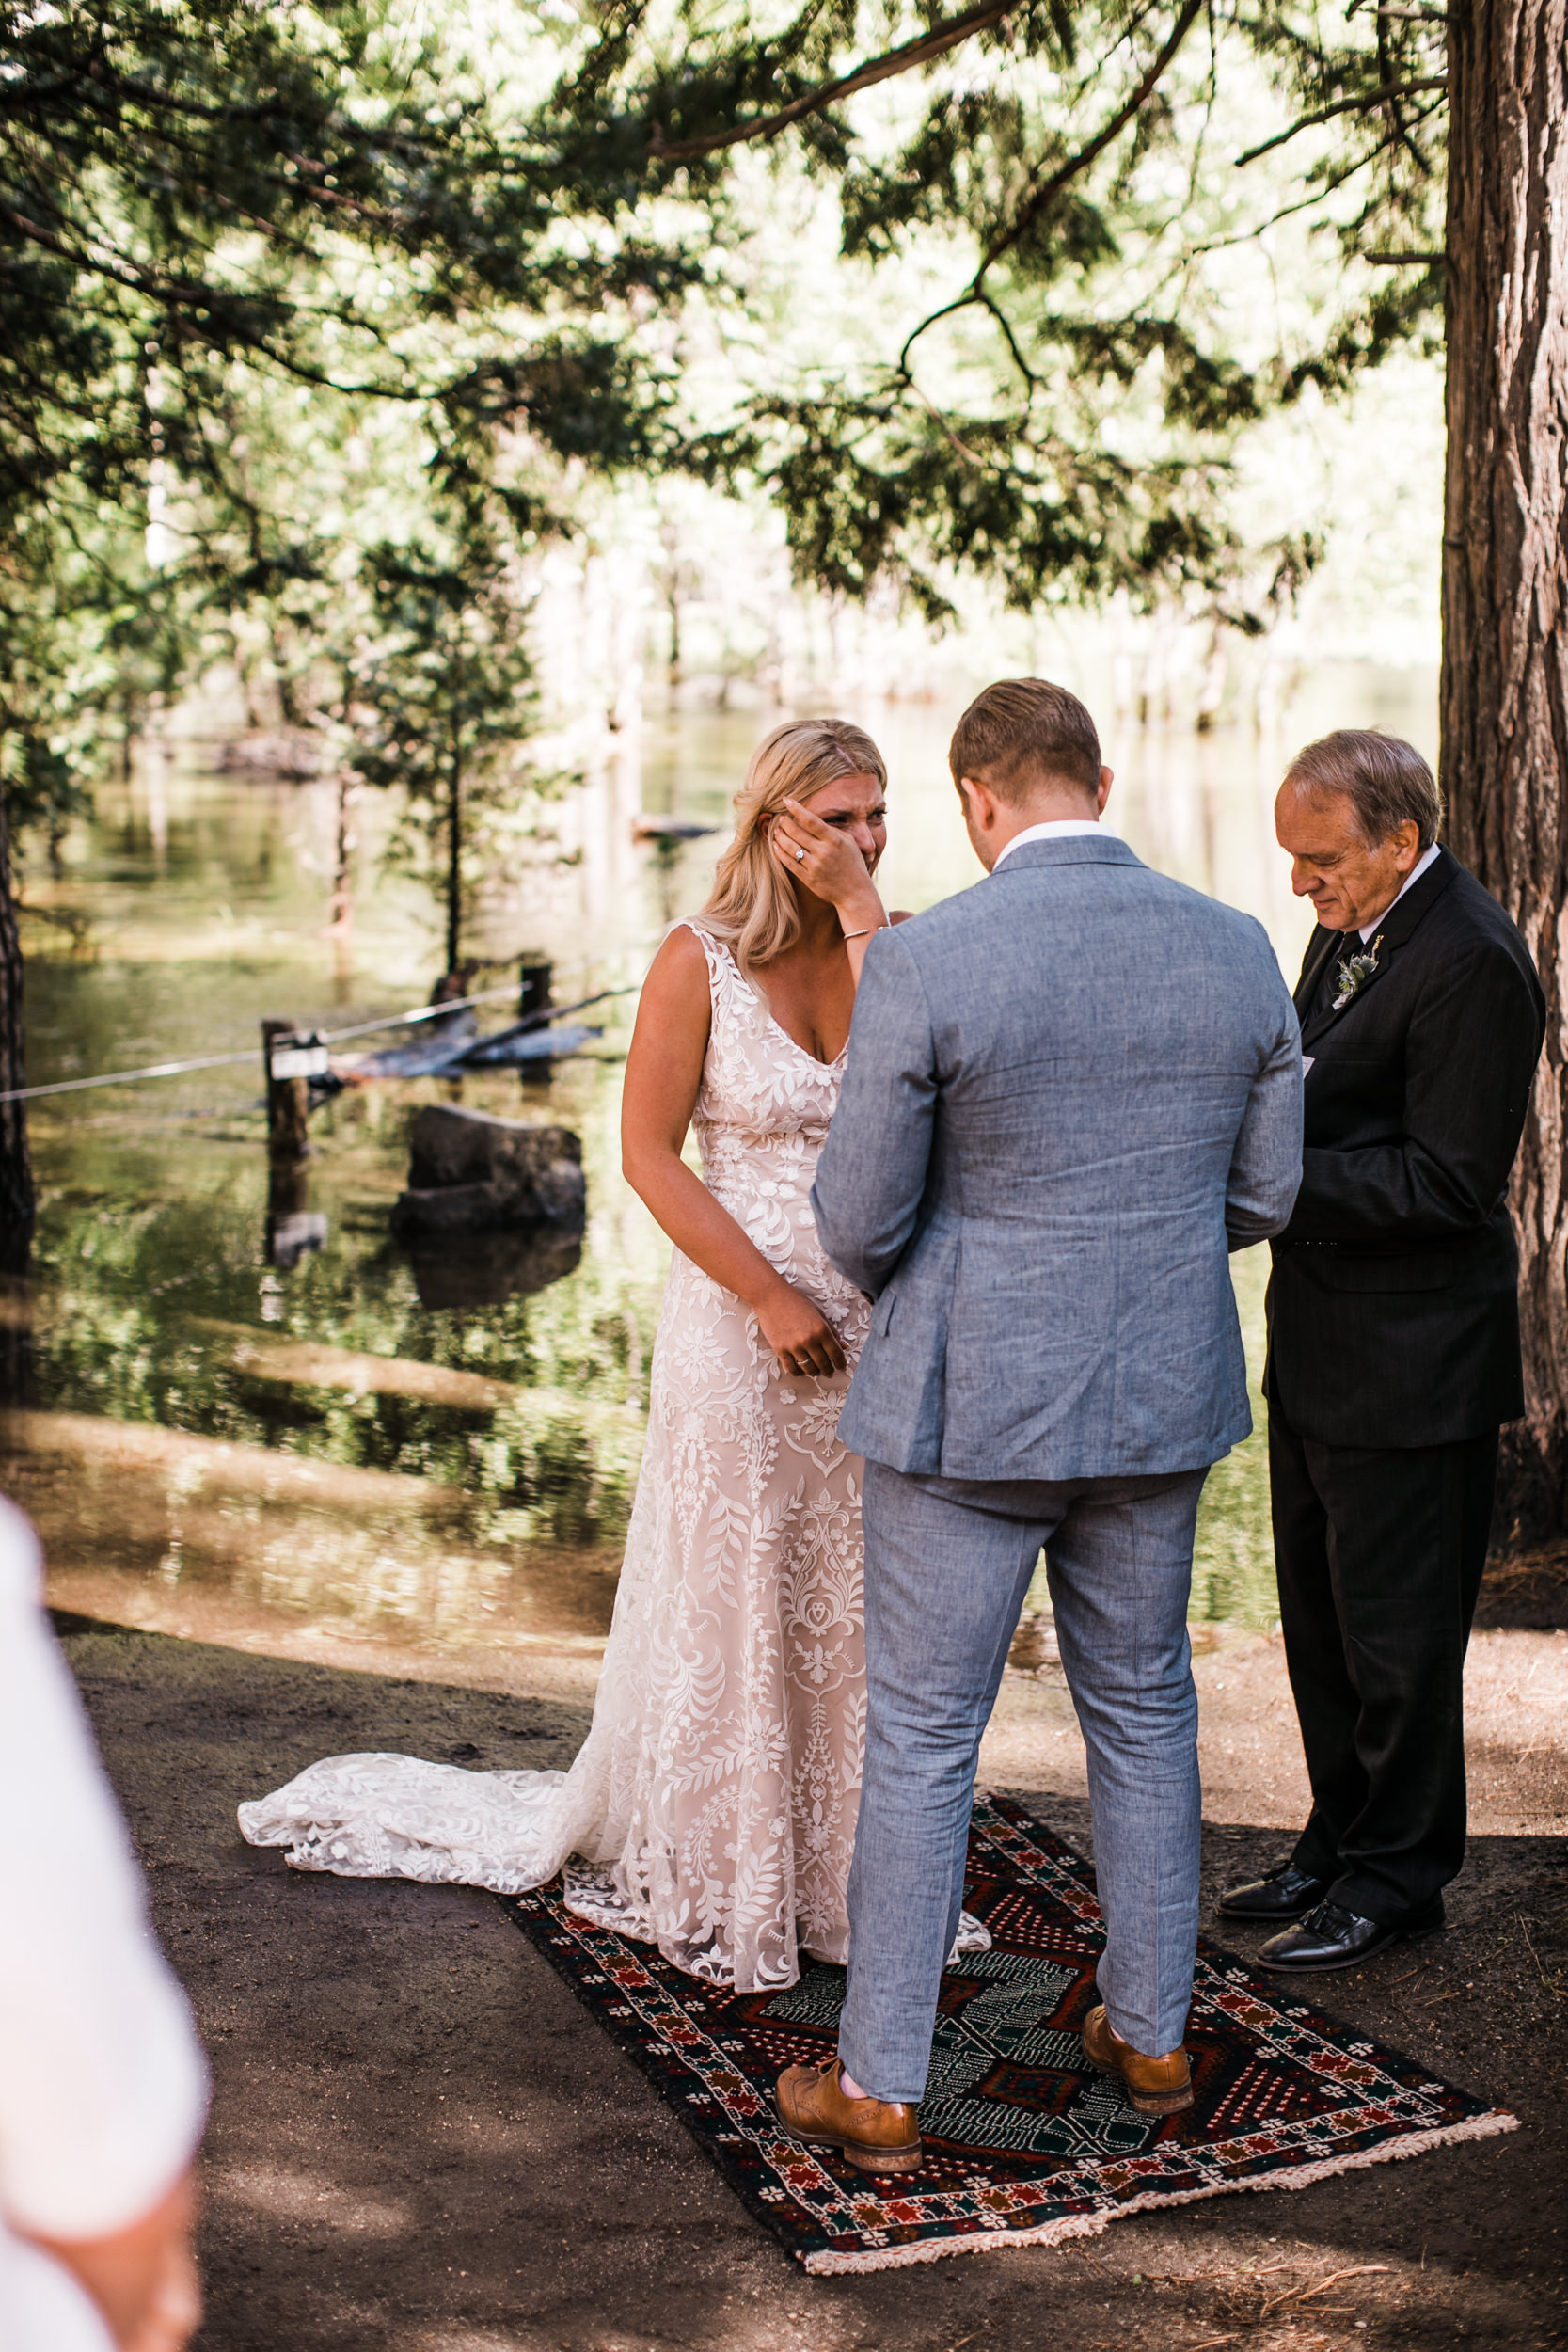 Erika + Grant's intimate Yosemite National Park destination wedding + romantic backyard reception under twinkle lights | ceremony in the woods in yosemite valley | the hearnes adventure photography